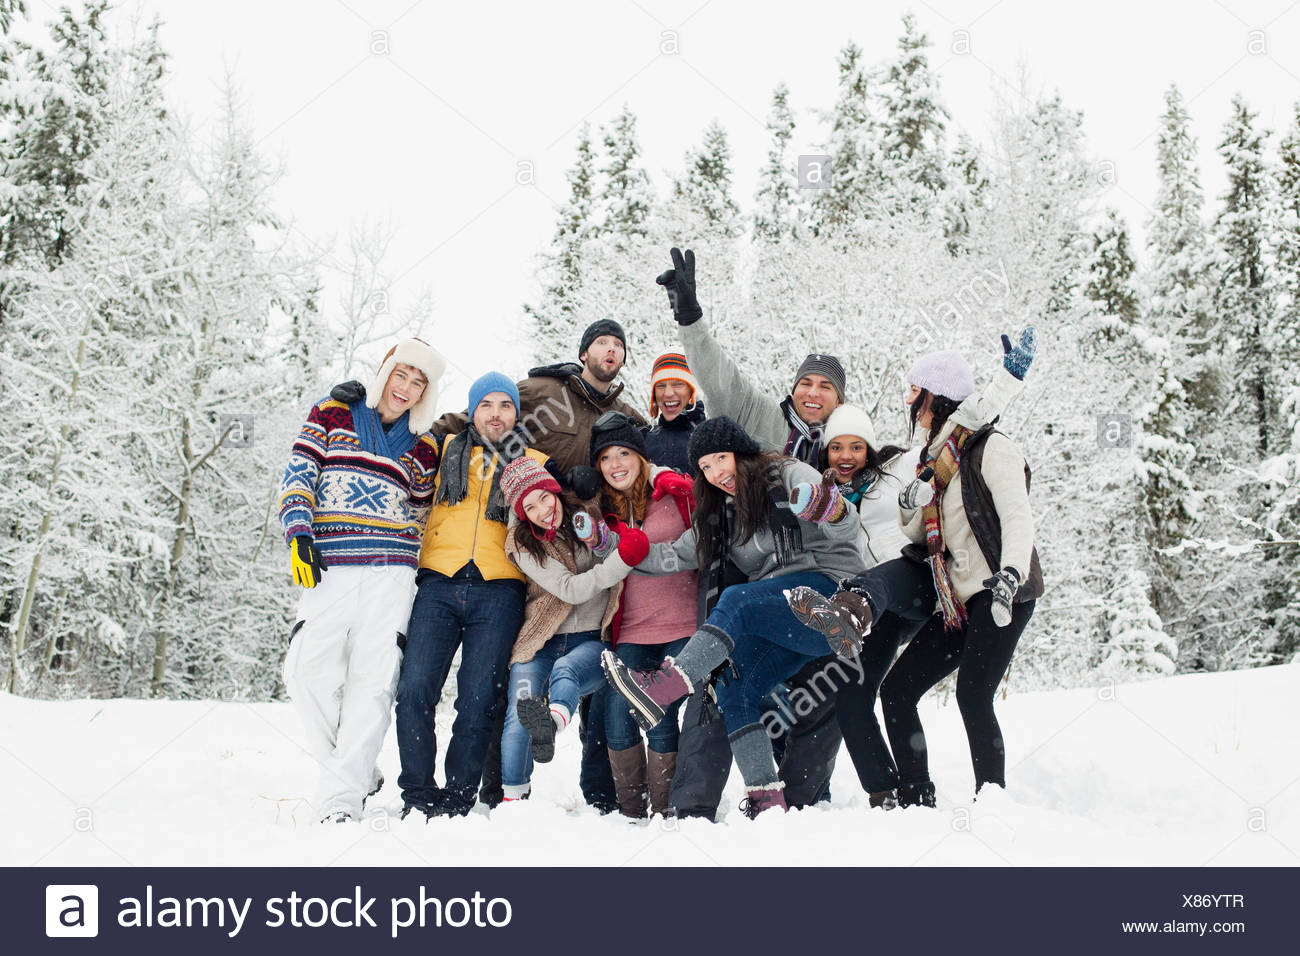 group photo of adults in the countryside - Stock Image